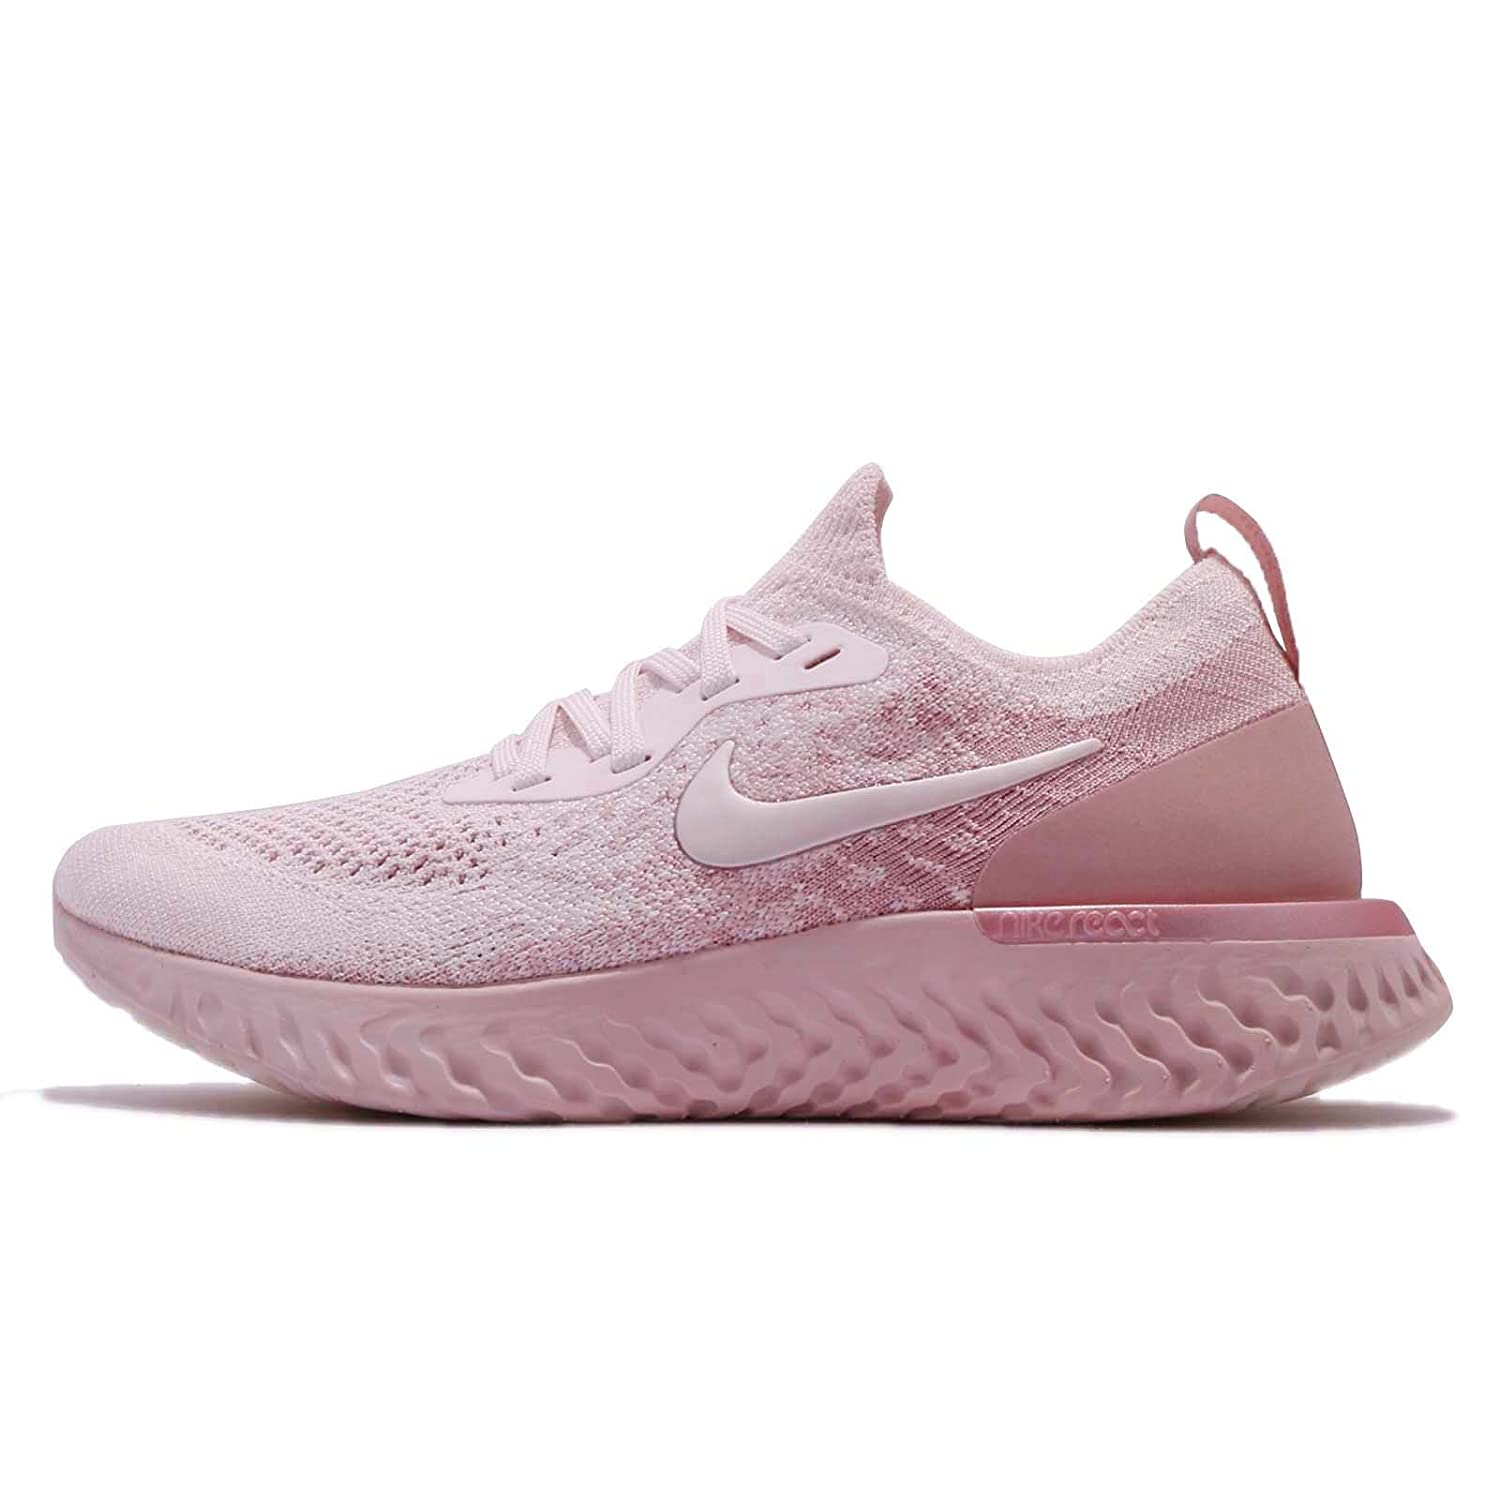 Mujeres Flyknit Nike Wmns Epic Reaccionar Flyknit Mujeres Pearl Pink  Perla b8c588